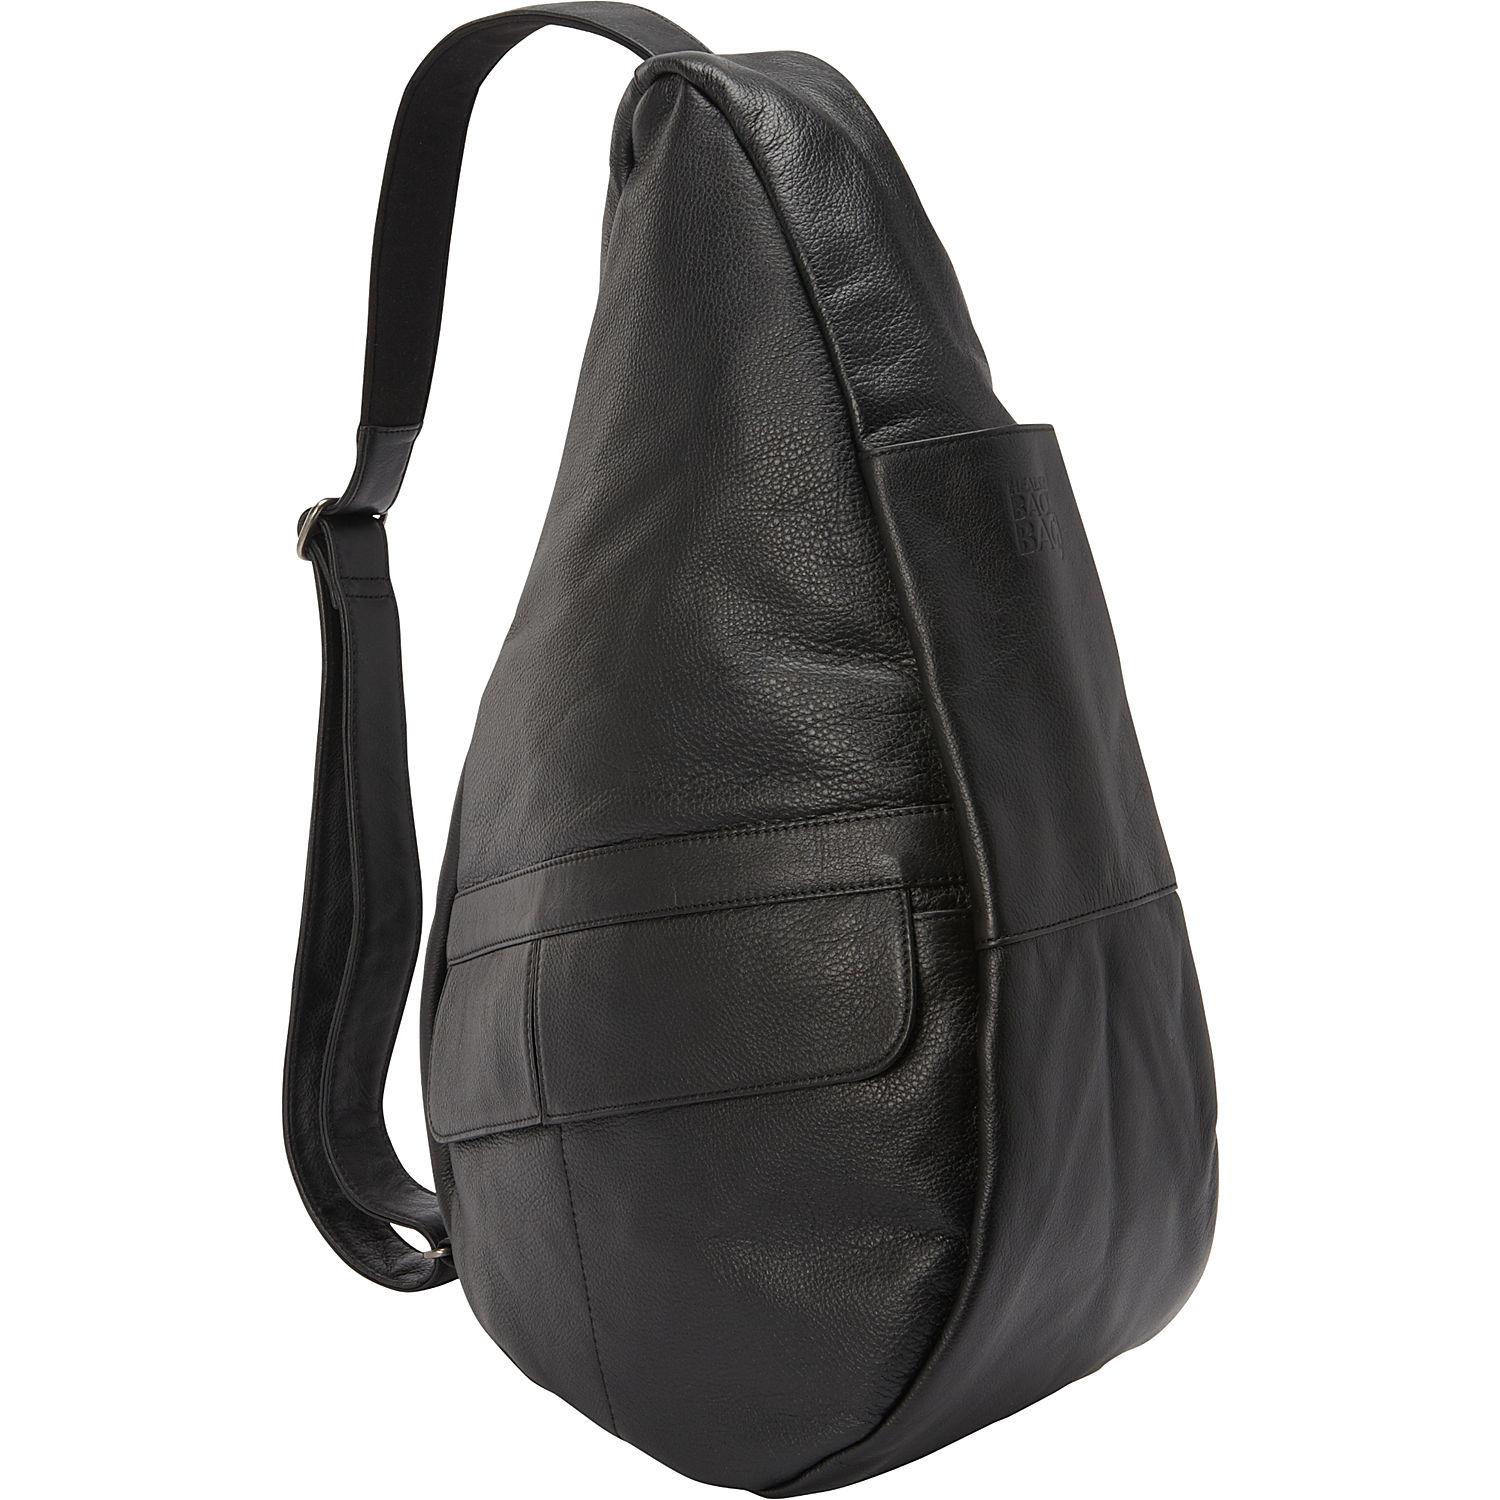 Back Purse : AmeriBag Healthy Back Bag Leather Large - eBags.com